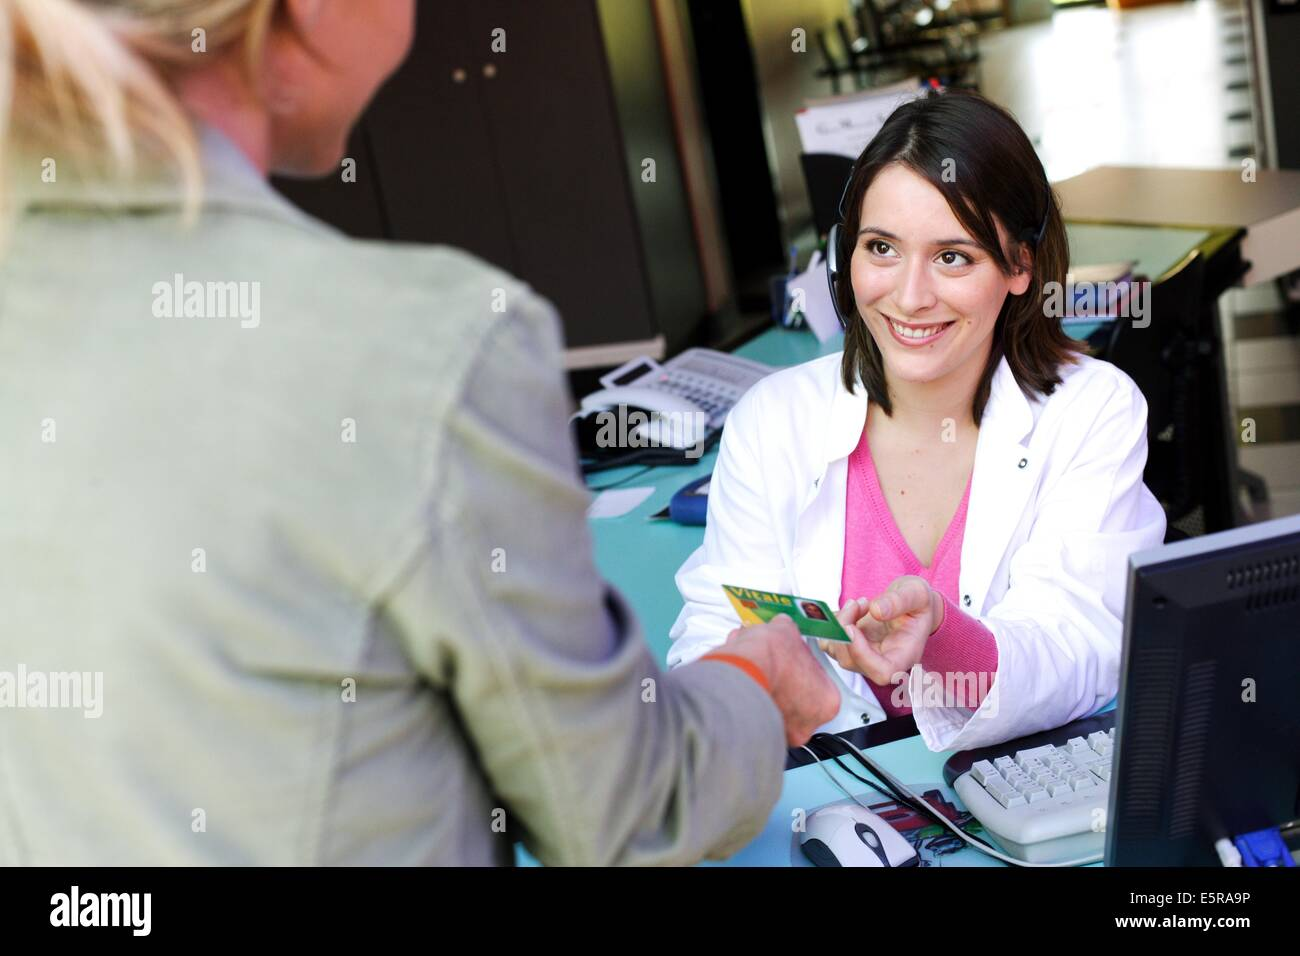 Woman giving a medical secretary her health card in a medical office. - Stock Image